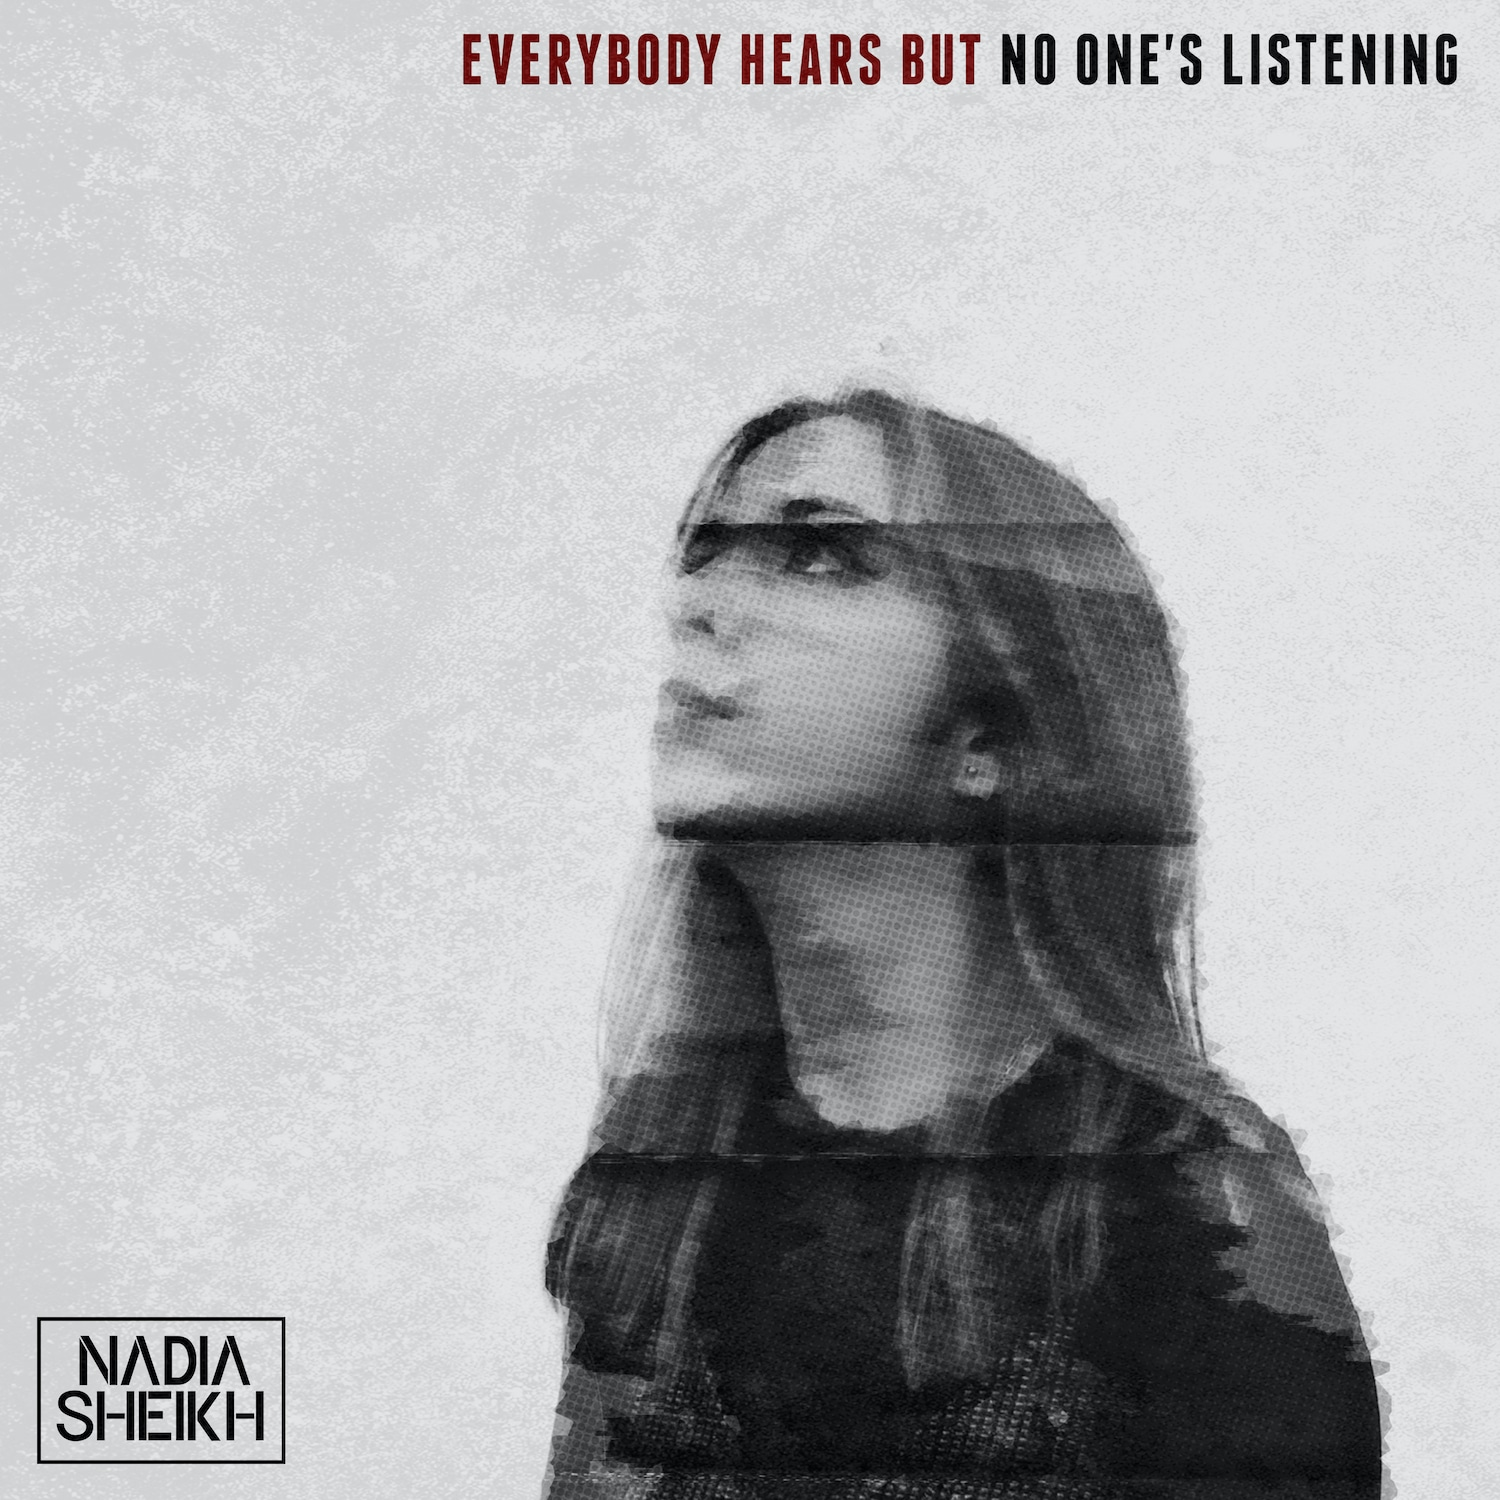 Nadia Sheikh Everybody Hears But No One's Listening artwork